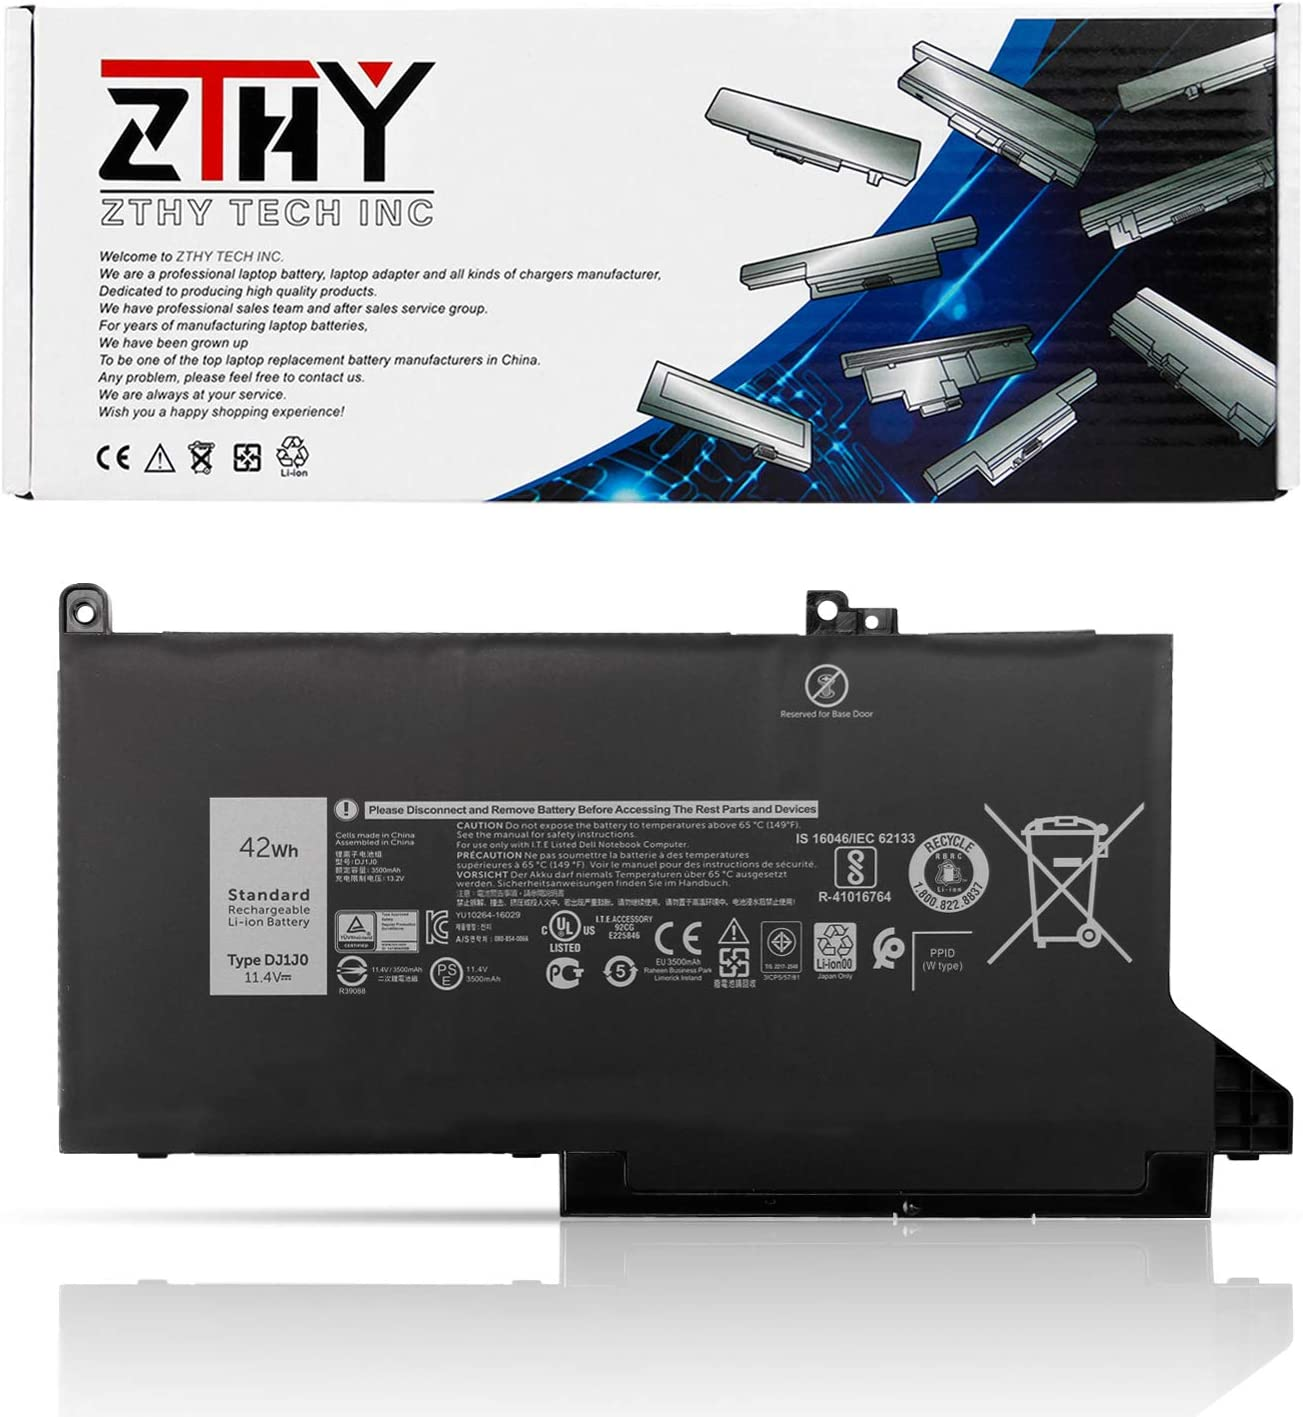 ZTHY DJ1J0 42Wh 3-Cell Laptop Battery for Dell Latitude 12 7280 K8X0T KHY0C 7290 E7280 E7290 13 7380 7390 E7380 E7390 14 7480 7490 E7480 E7490 Series Notebook 451-BBZL C27RW PGFX4 ONFOH DJ1JO 11.4V